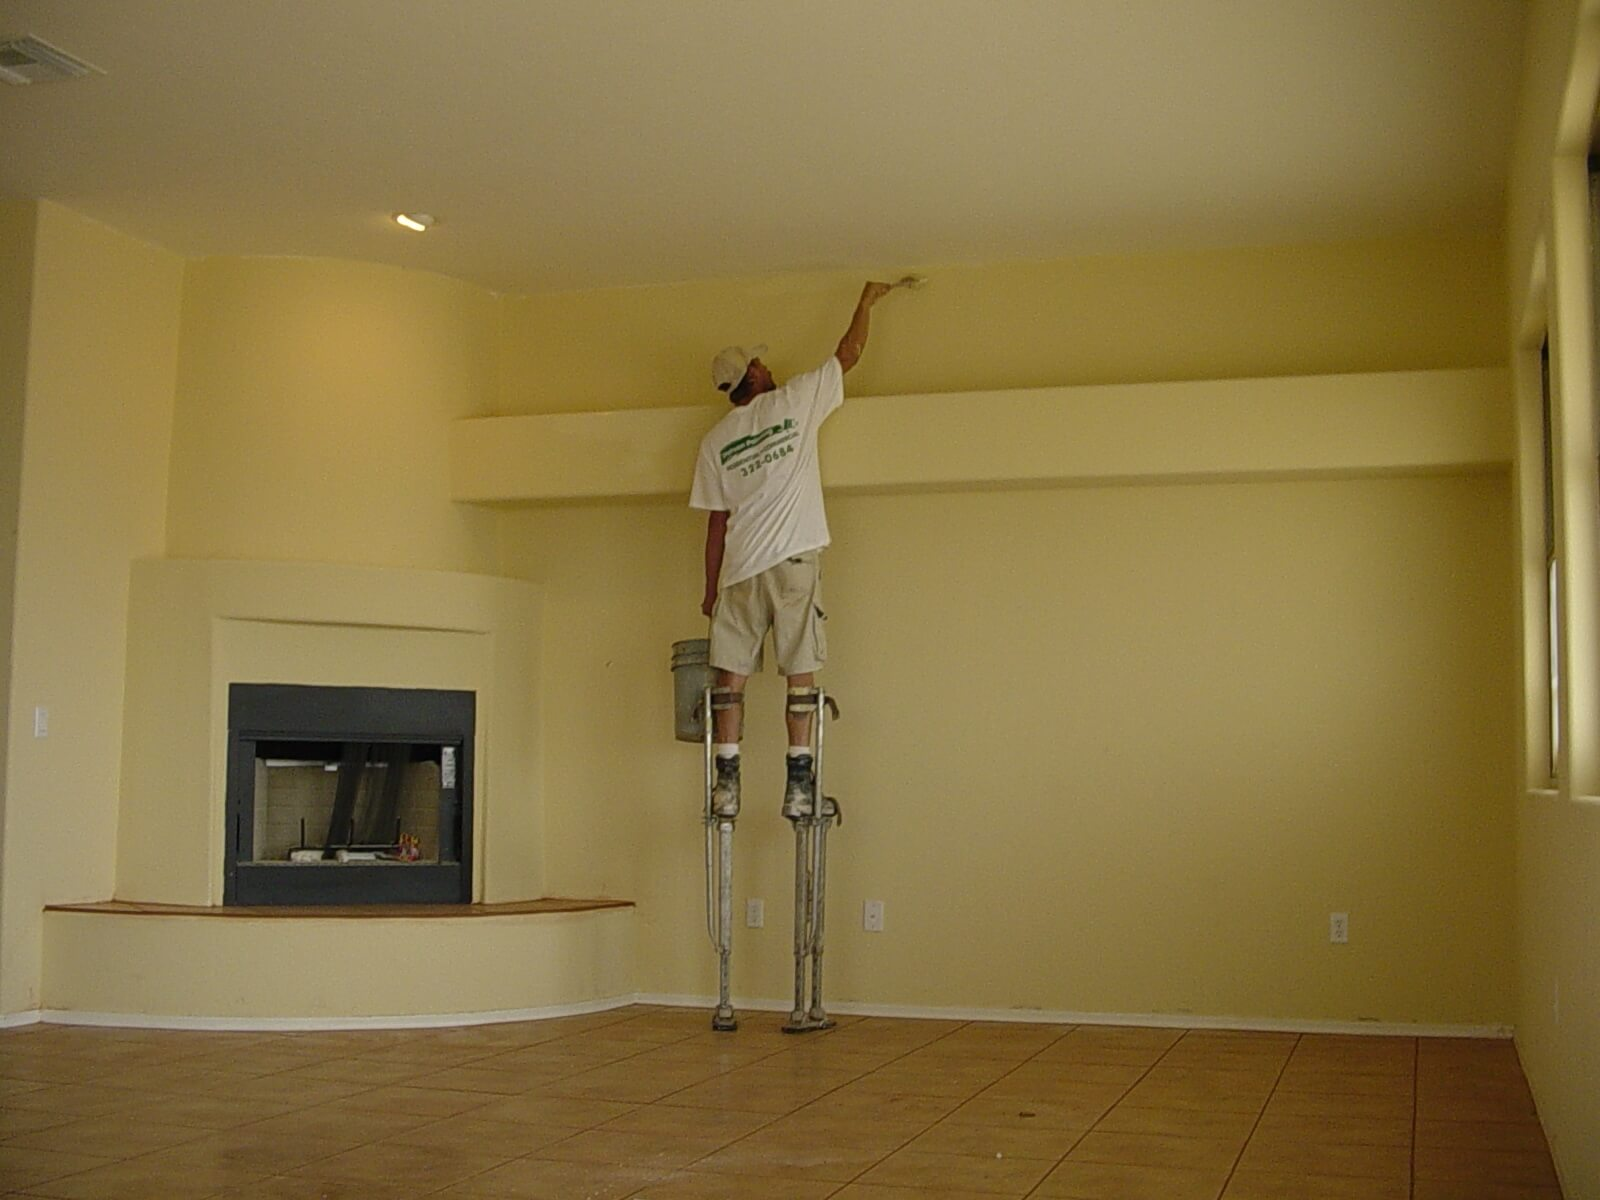 Residential Painting Services-College Station TX Professional Painting Contractors-We offer Residential & Commercial Painting, Interior Painting, Exterior Painting, Primer Painting, Industrial Painting, Professional Painters, Institutional Painters, and more.